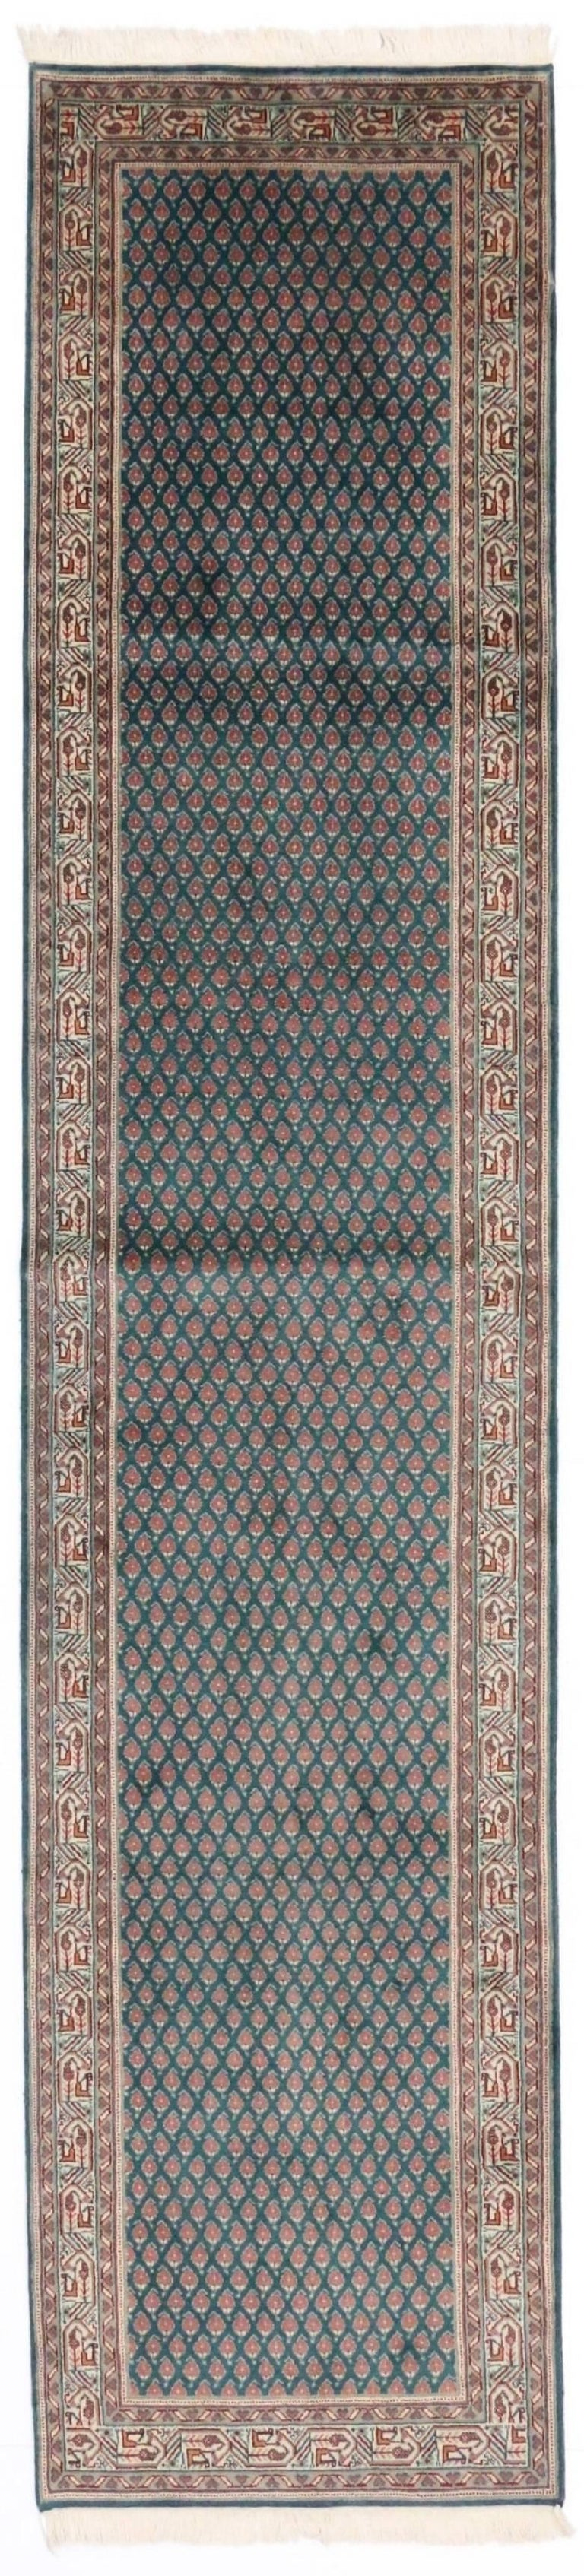 Vintage Indian Runner with Old World Victorian Style For Sale 3